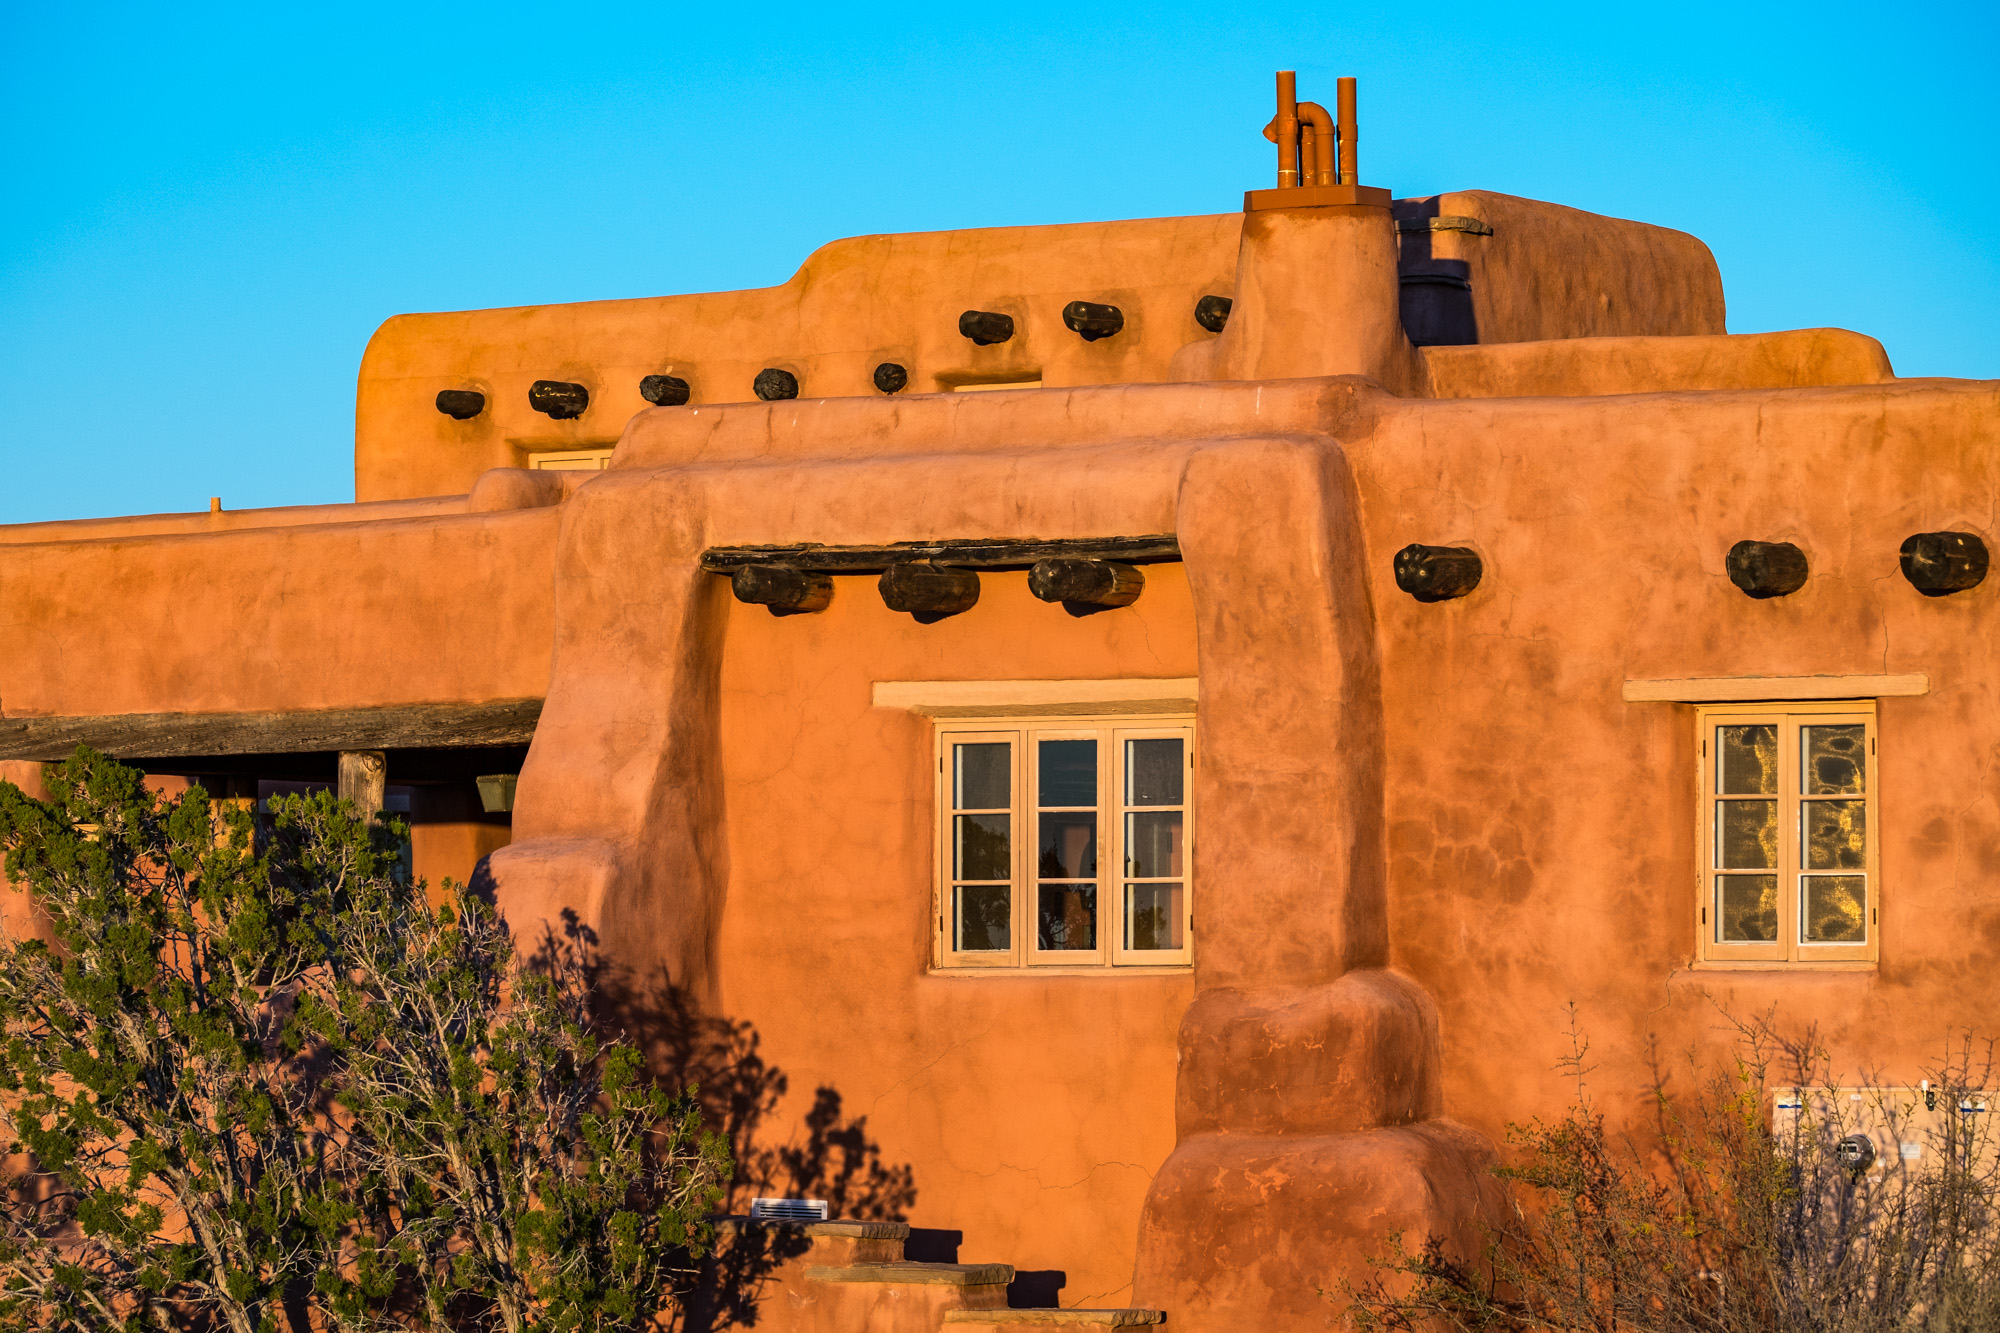 The Painted Desert Inn, built in the 1930's, is now a museum and historical site within the park.